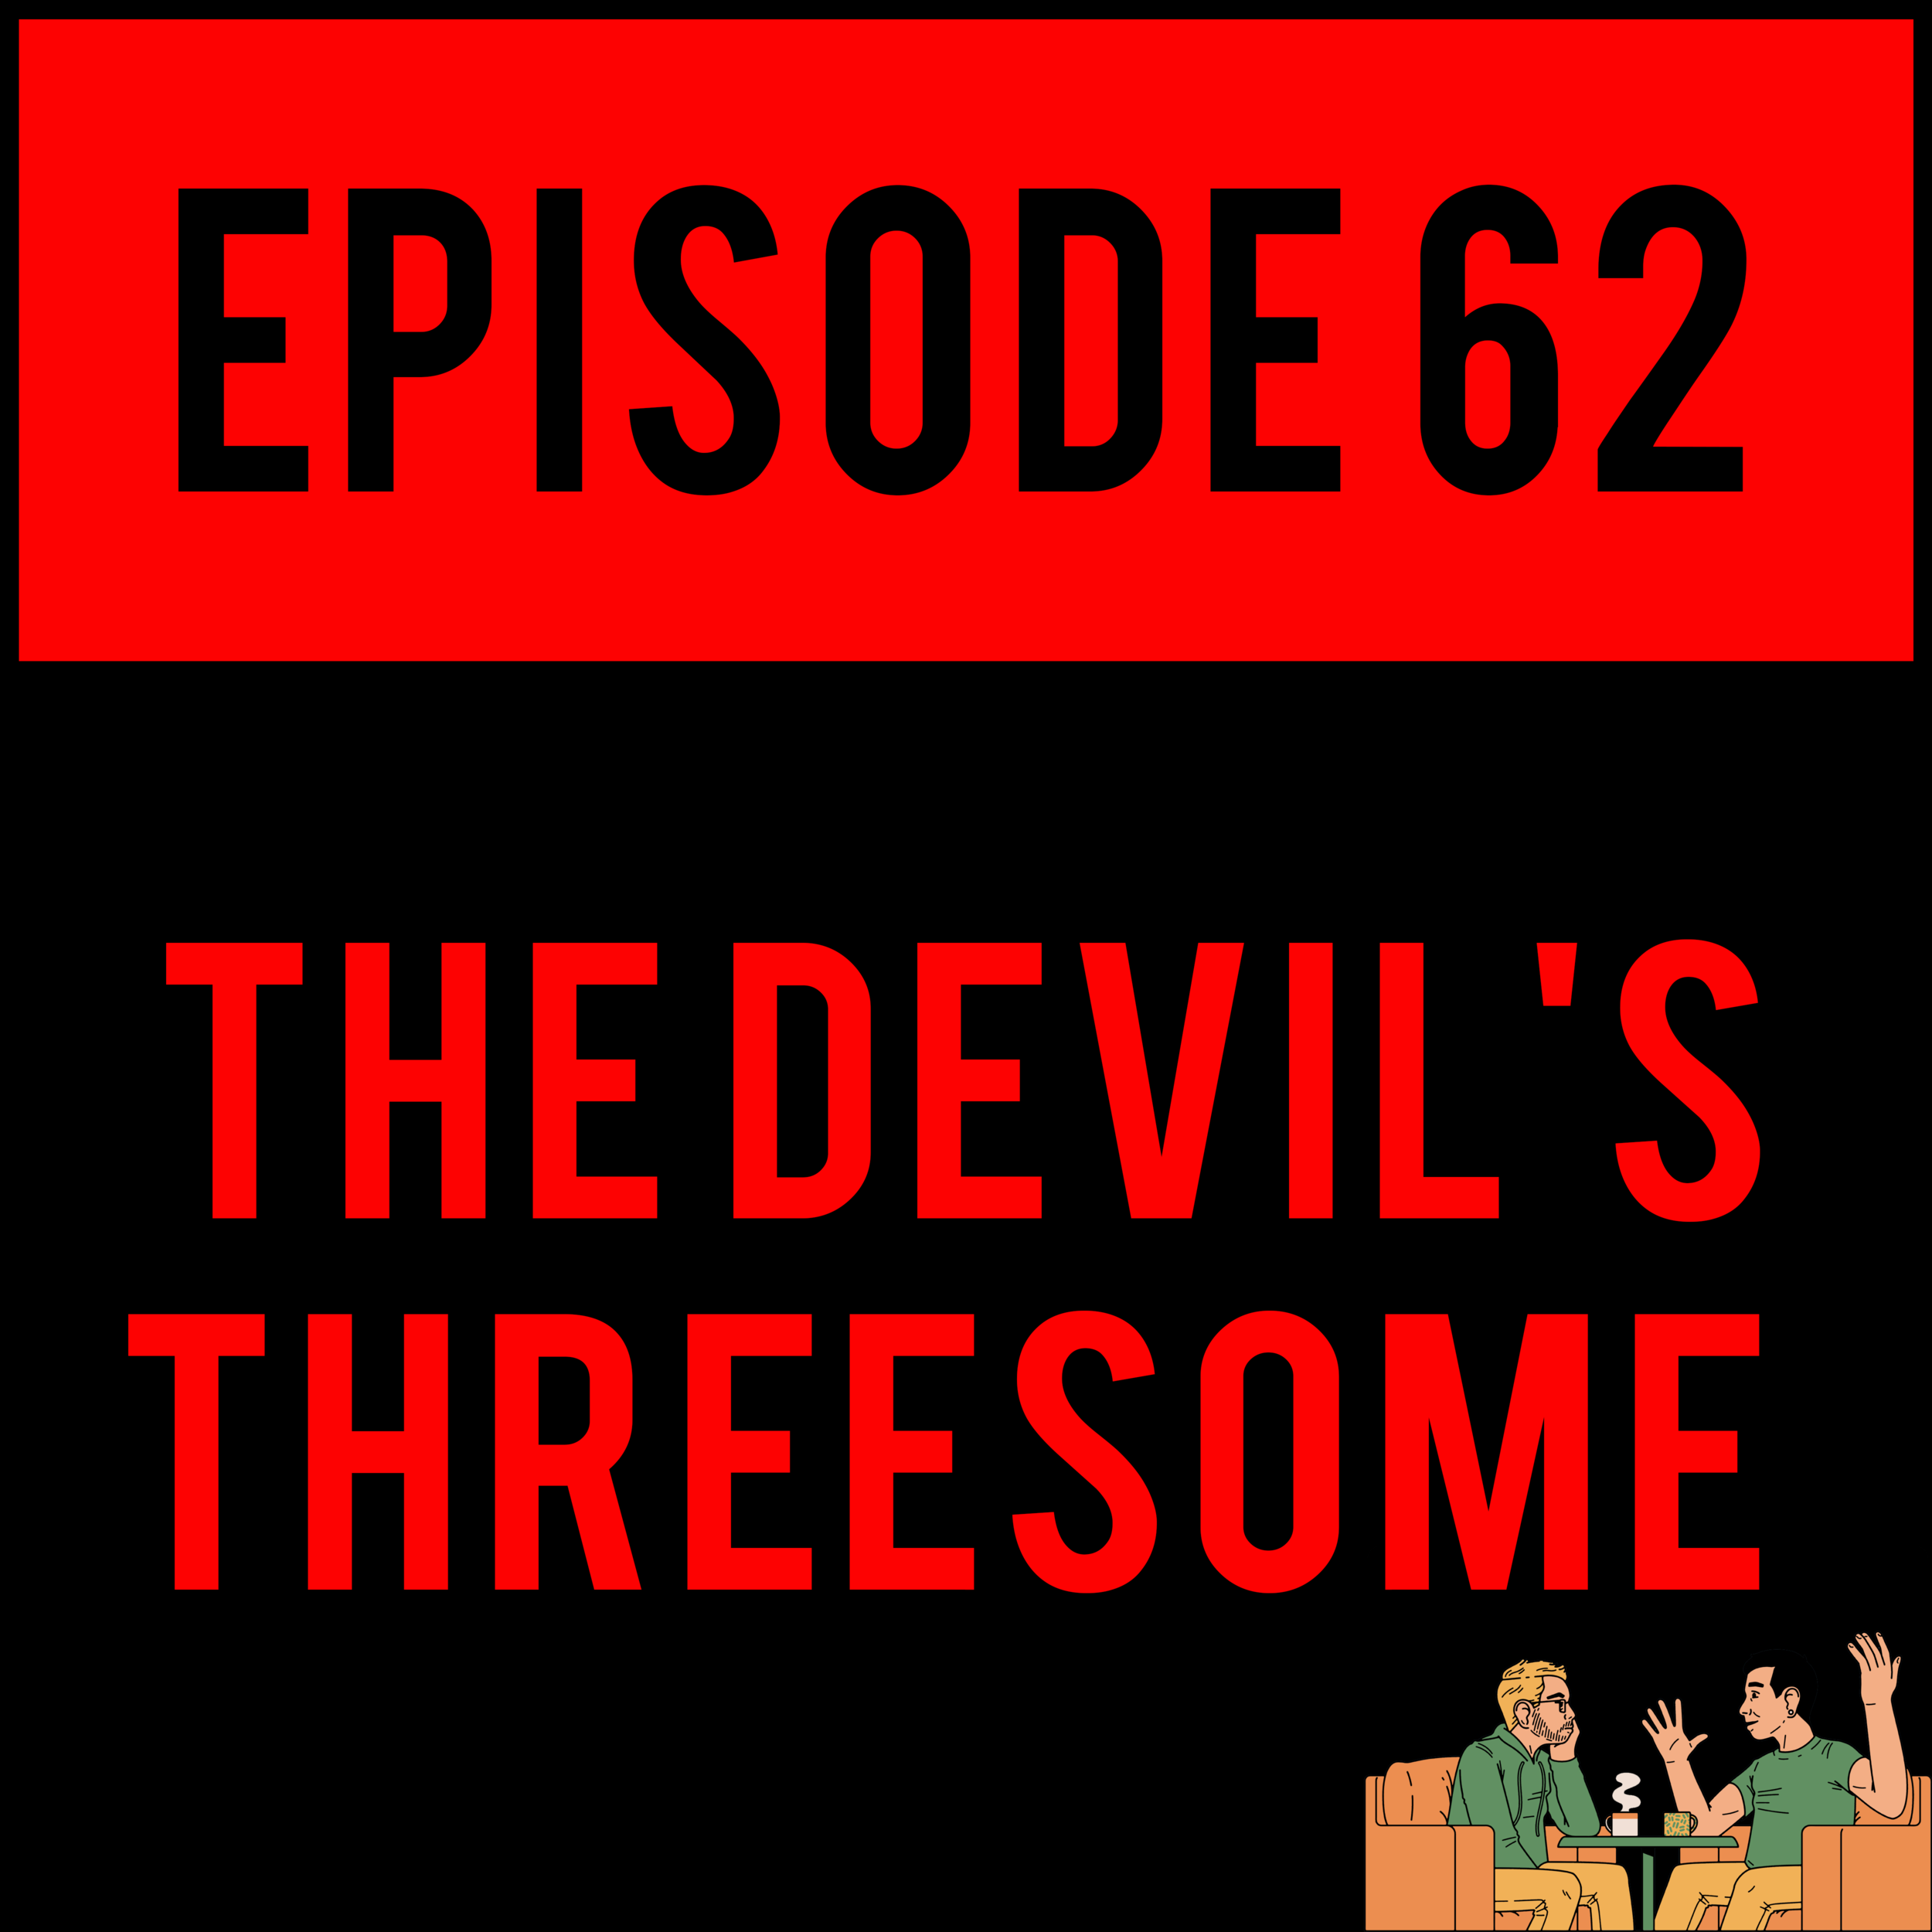 "EPISODE 62 - Alex wouldn't dare cooking with high heat, Danny introduces a new segment ""What's on Danny's Timeline?"" and Justyn makes you want to rip your ears off and cooko them on low heat. Get ready for an eye-bugging, sore throat kind of time with ya bois on THE DEVIL'S THREESOME - EPISODE 62."